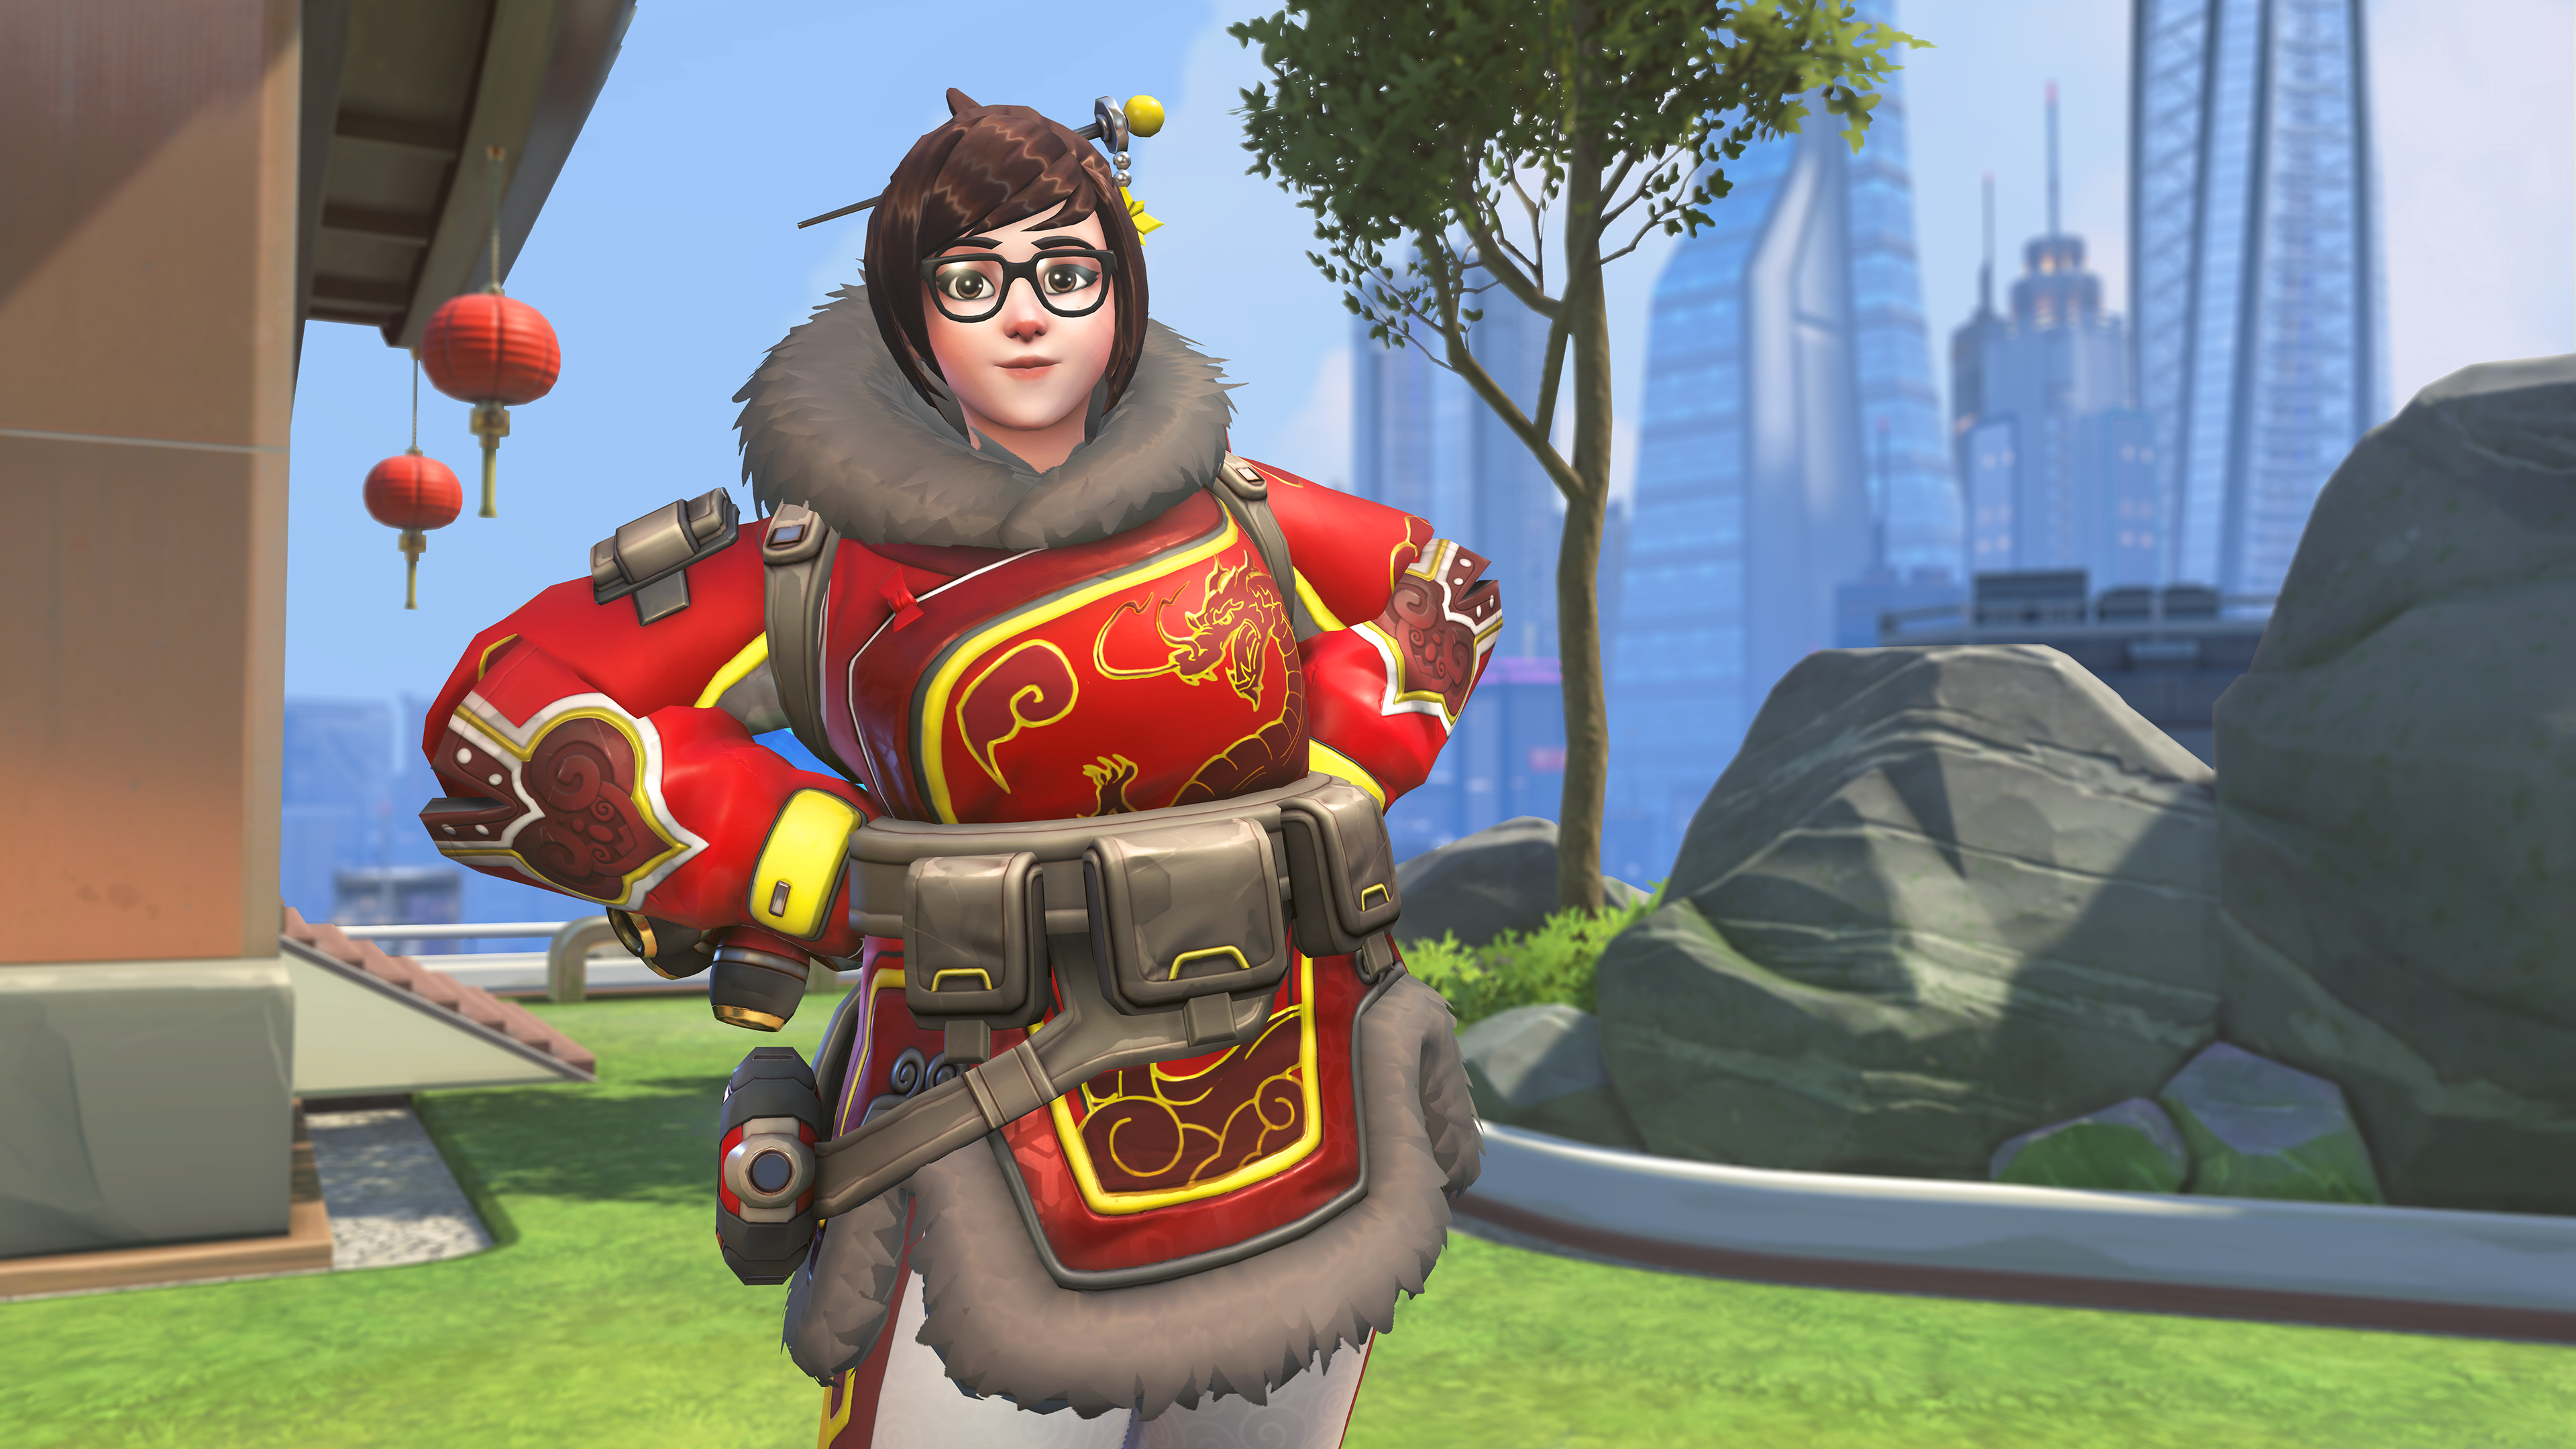 Protestors are trying to get Overwatch banned in China, using memes of popular hero Mei